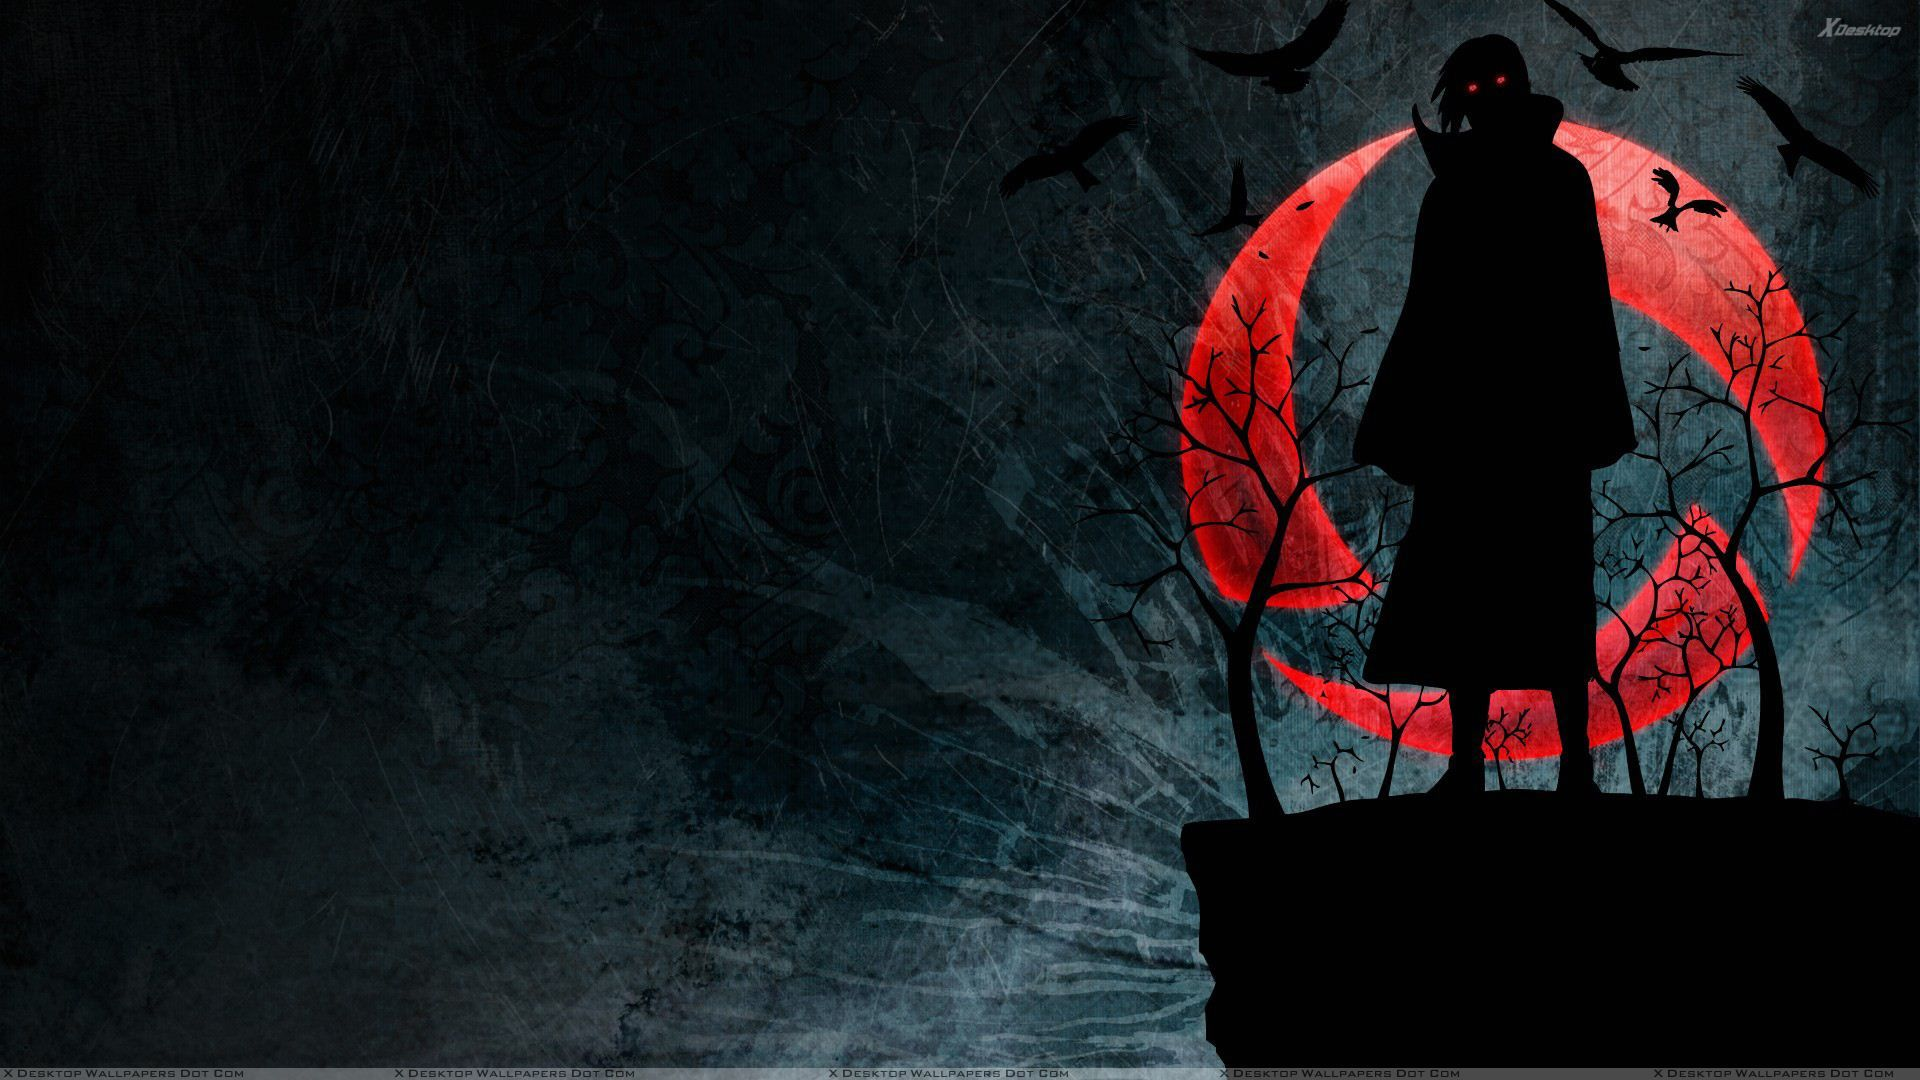 Red shadow wallpaper google search shadowly pinterest itachi red shadow wallpaper google search publicscrutiny Image collections